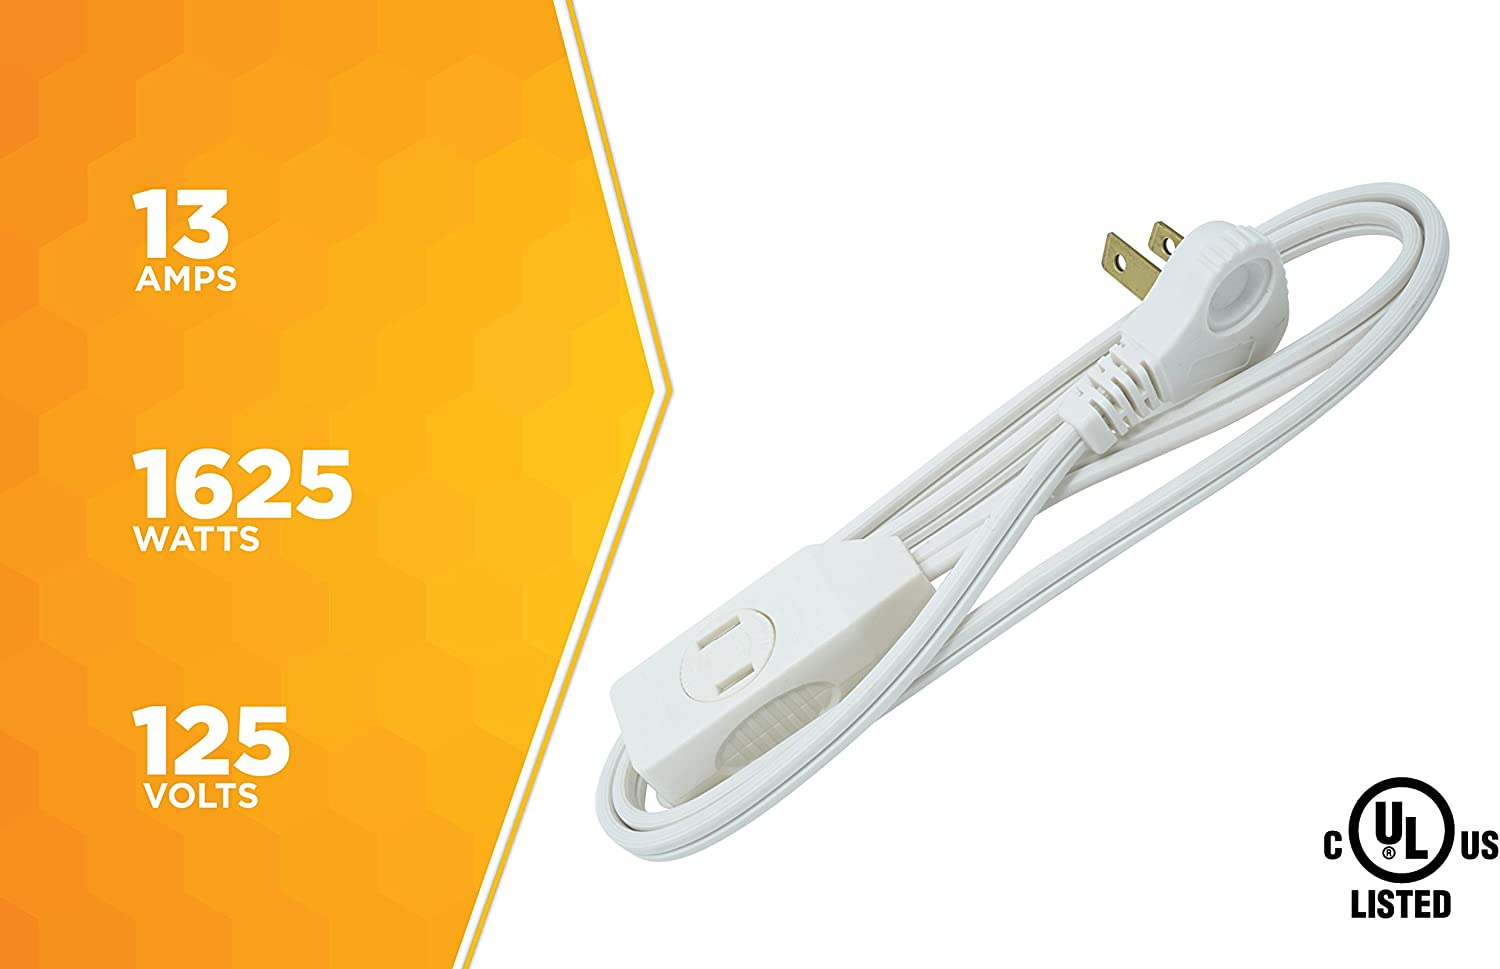 SlimLine 2235 Indoor Flat Plug Extension Cord, 3 Foot Cord, Right Angled Plug, 16 gauge, 3 Polarized Outlets, 125 Volts, Space Saving Design, Neutral White Color, UL and CUL Listed… - -